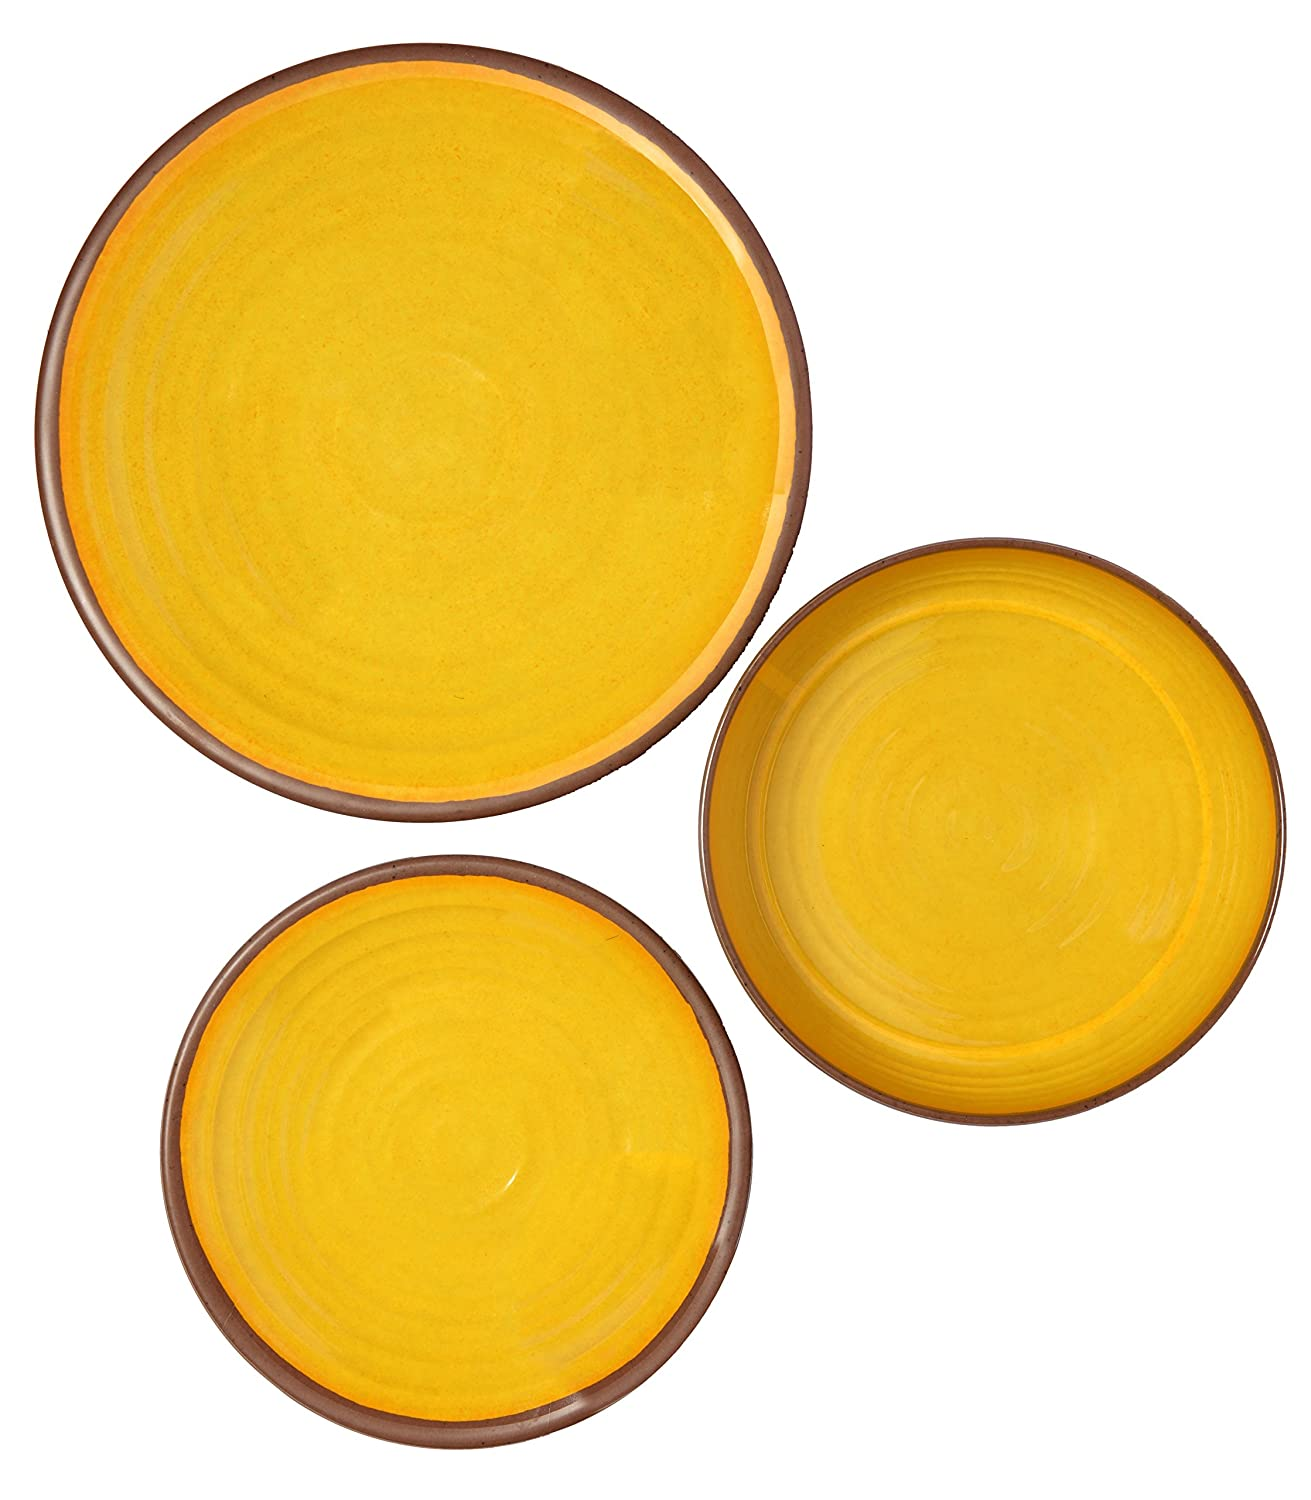 Melange 36-Piece 100/% Melamine Dinnerware Set | Shatter-Proof and Chip-Resistant Melamine Plates and Bowls Dinner Plate Clay Collection Color: Multicolor 12 Each Salad Plate /& Soup Bowl